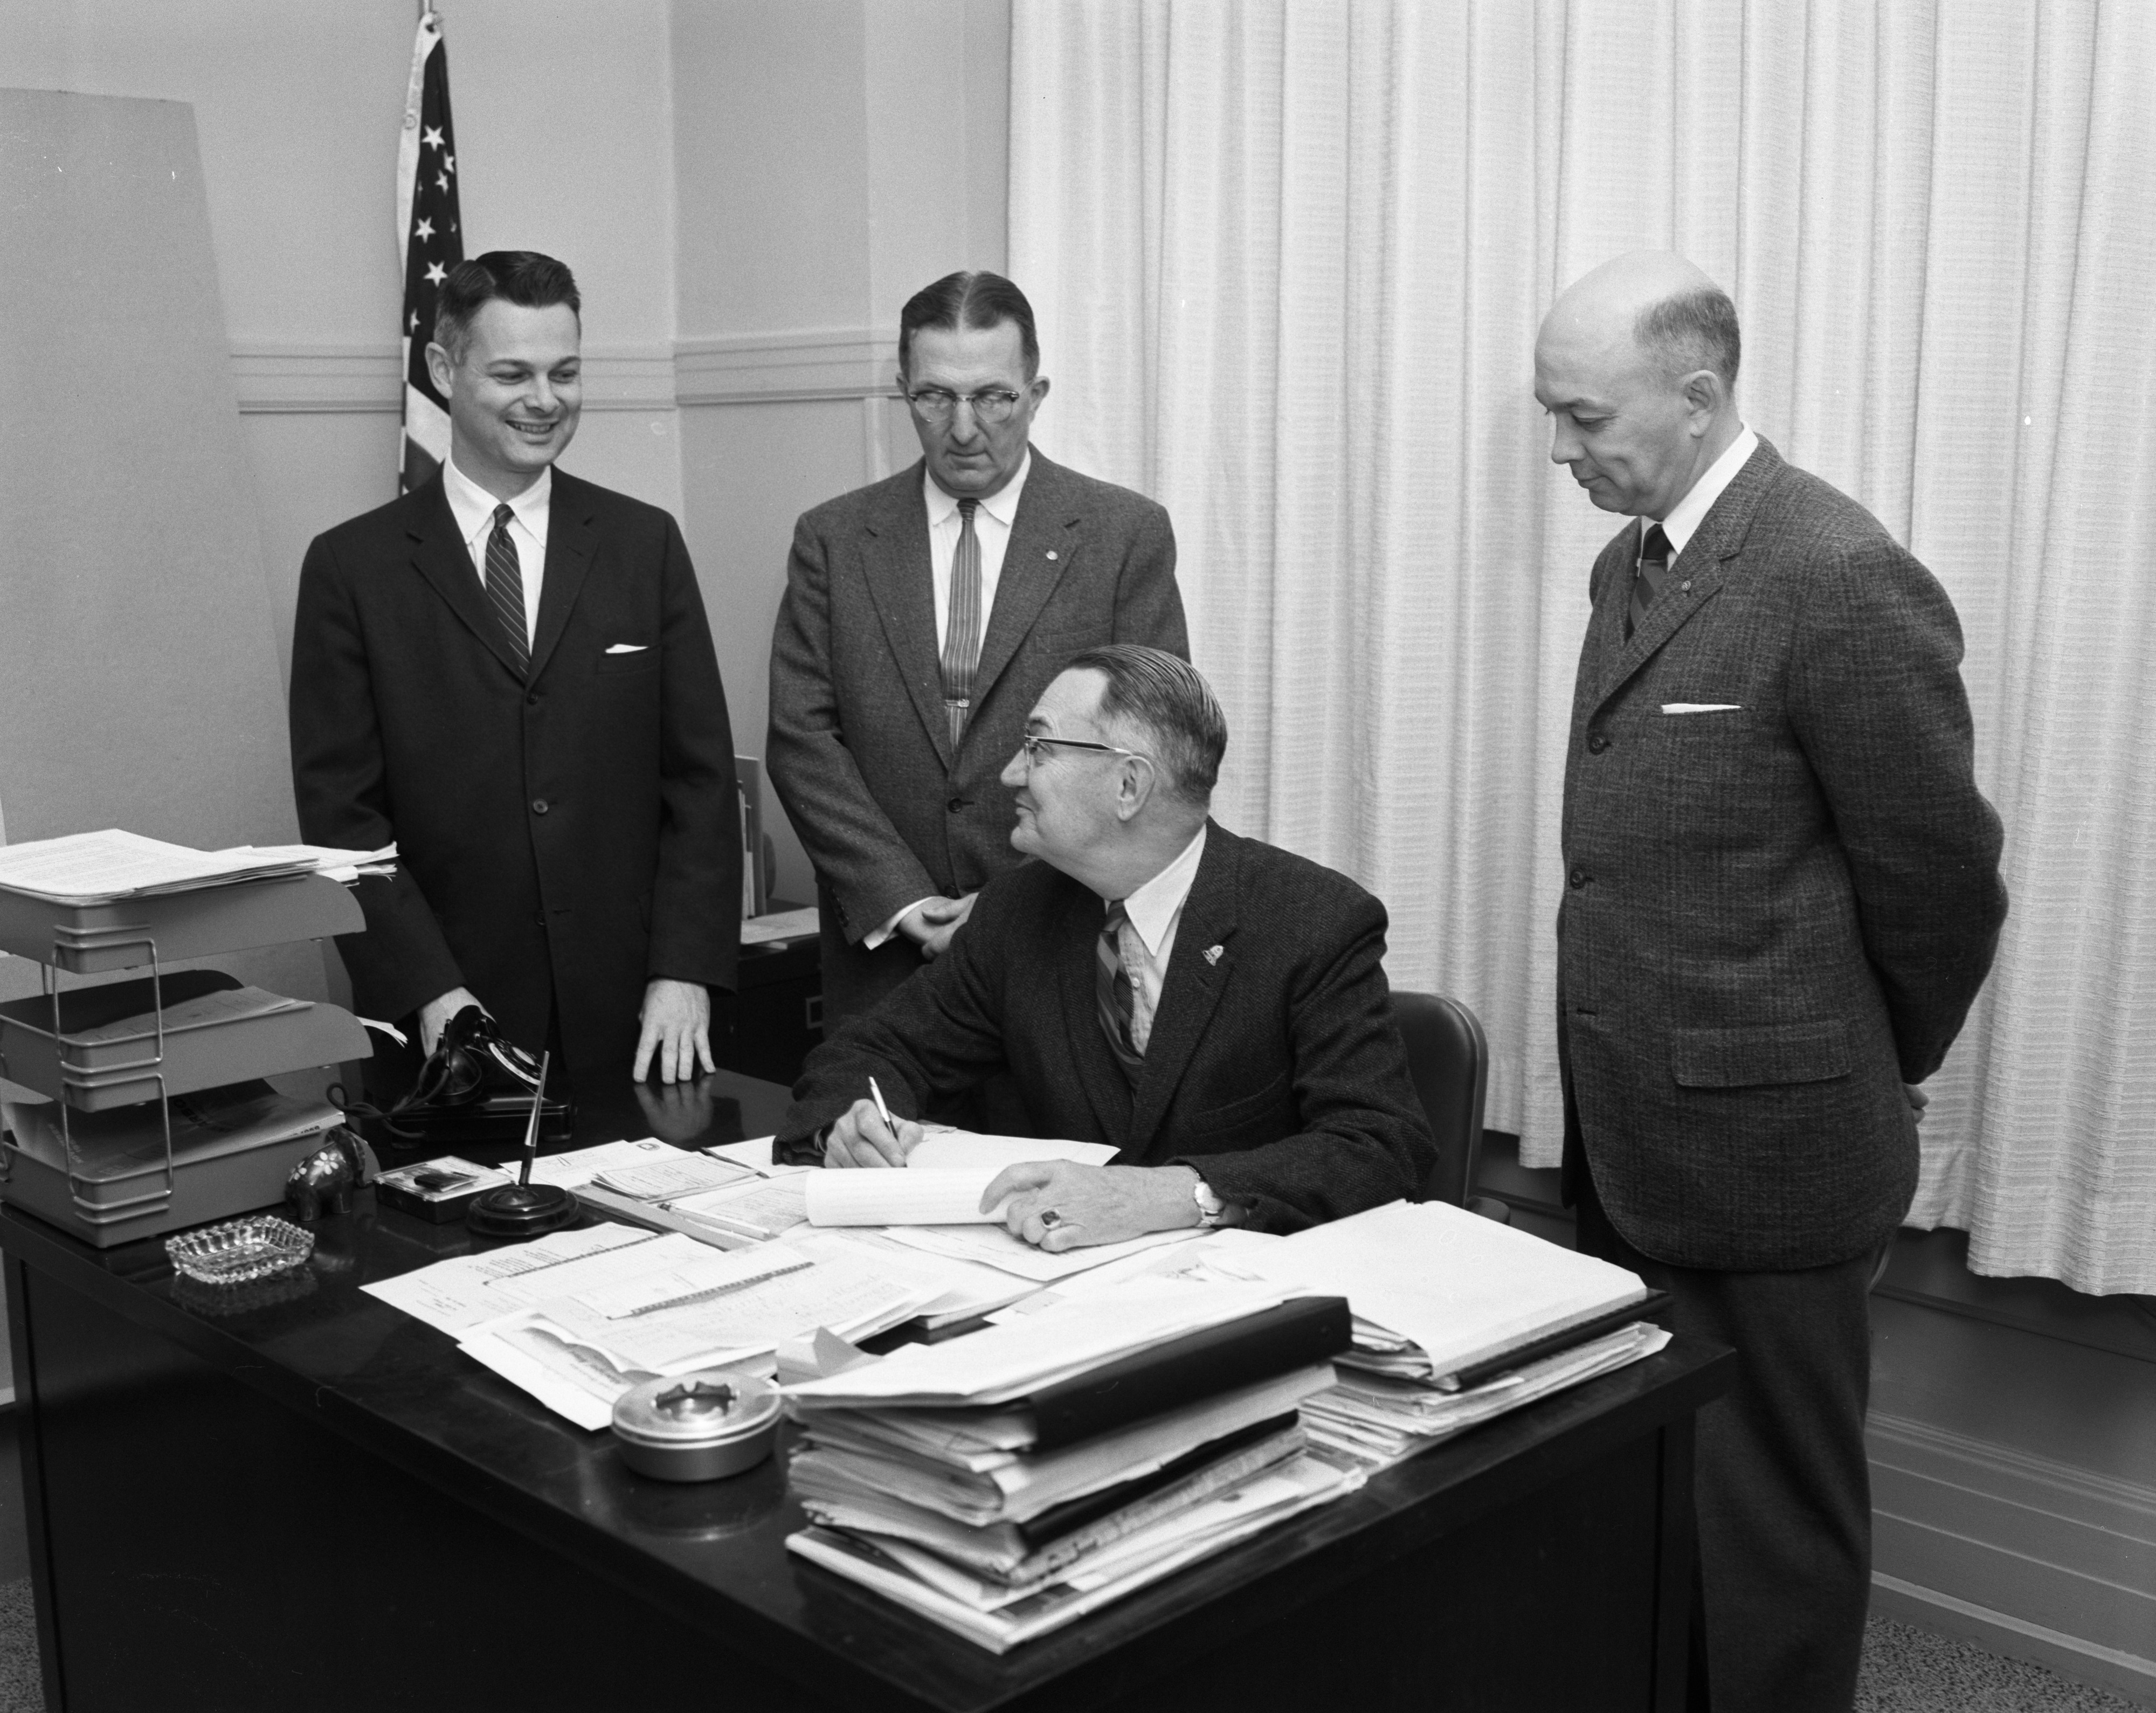 City Officials Sign Utility Permits for Ann Arbor Research Park, November 1960 image